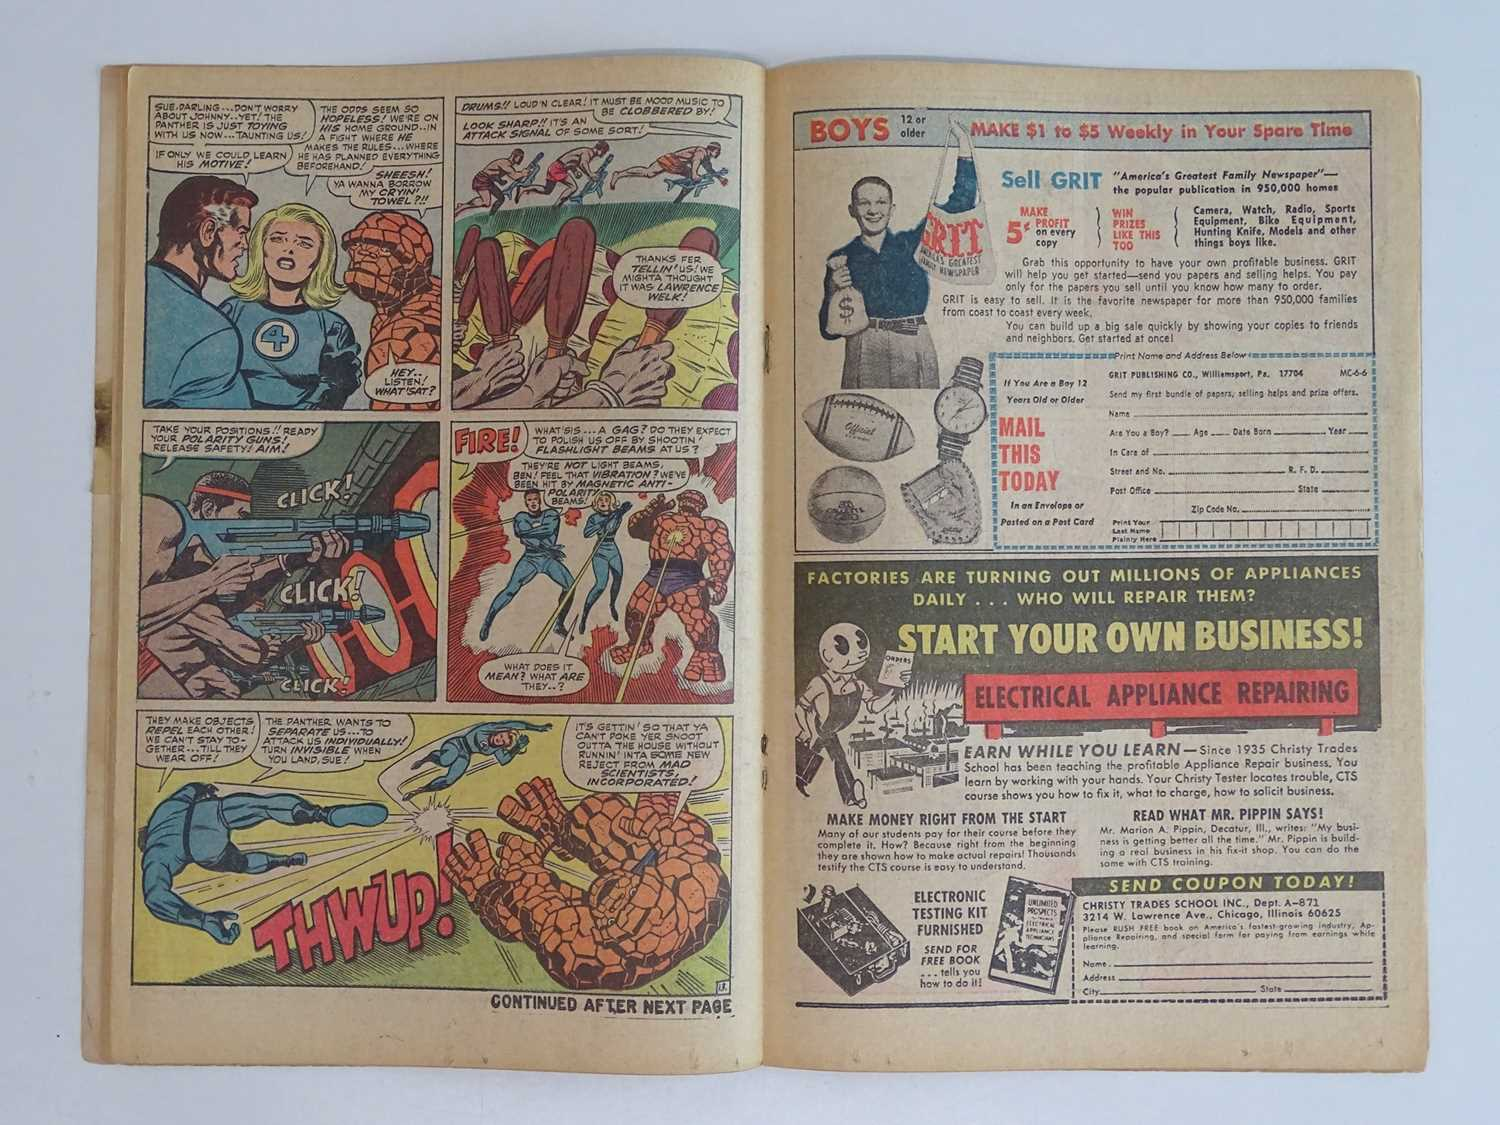 FANTASTIC FOUR #52 (1966 - MARVEL - UK Price Variant) - First appearance of Black Panther (one of - Image 6 of 10